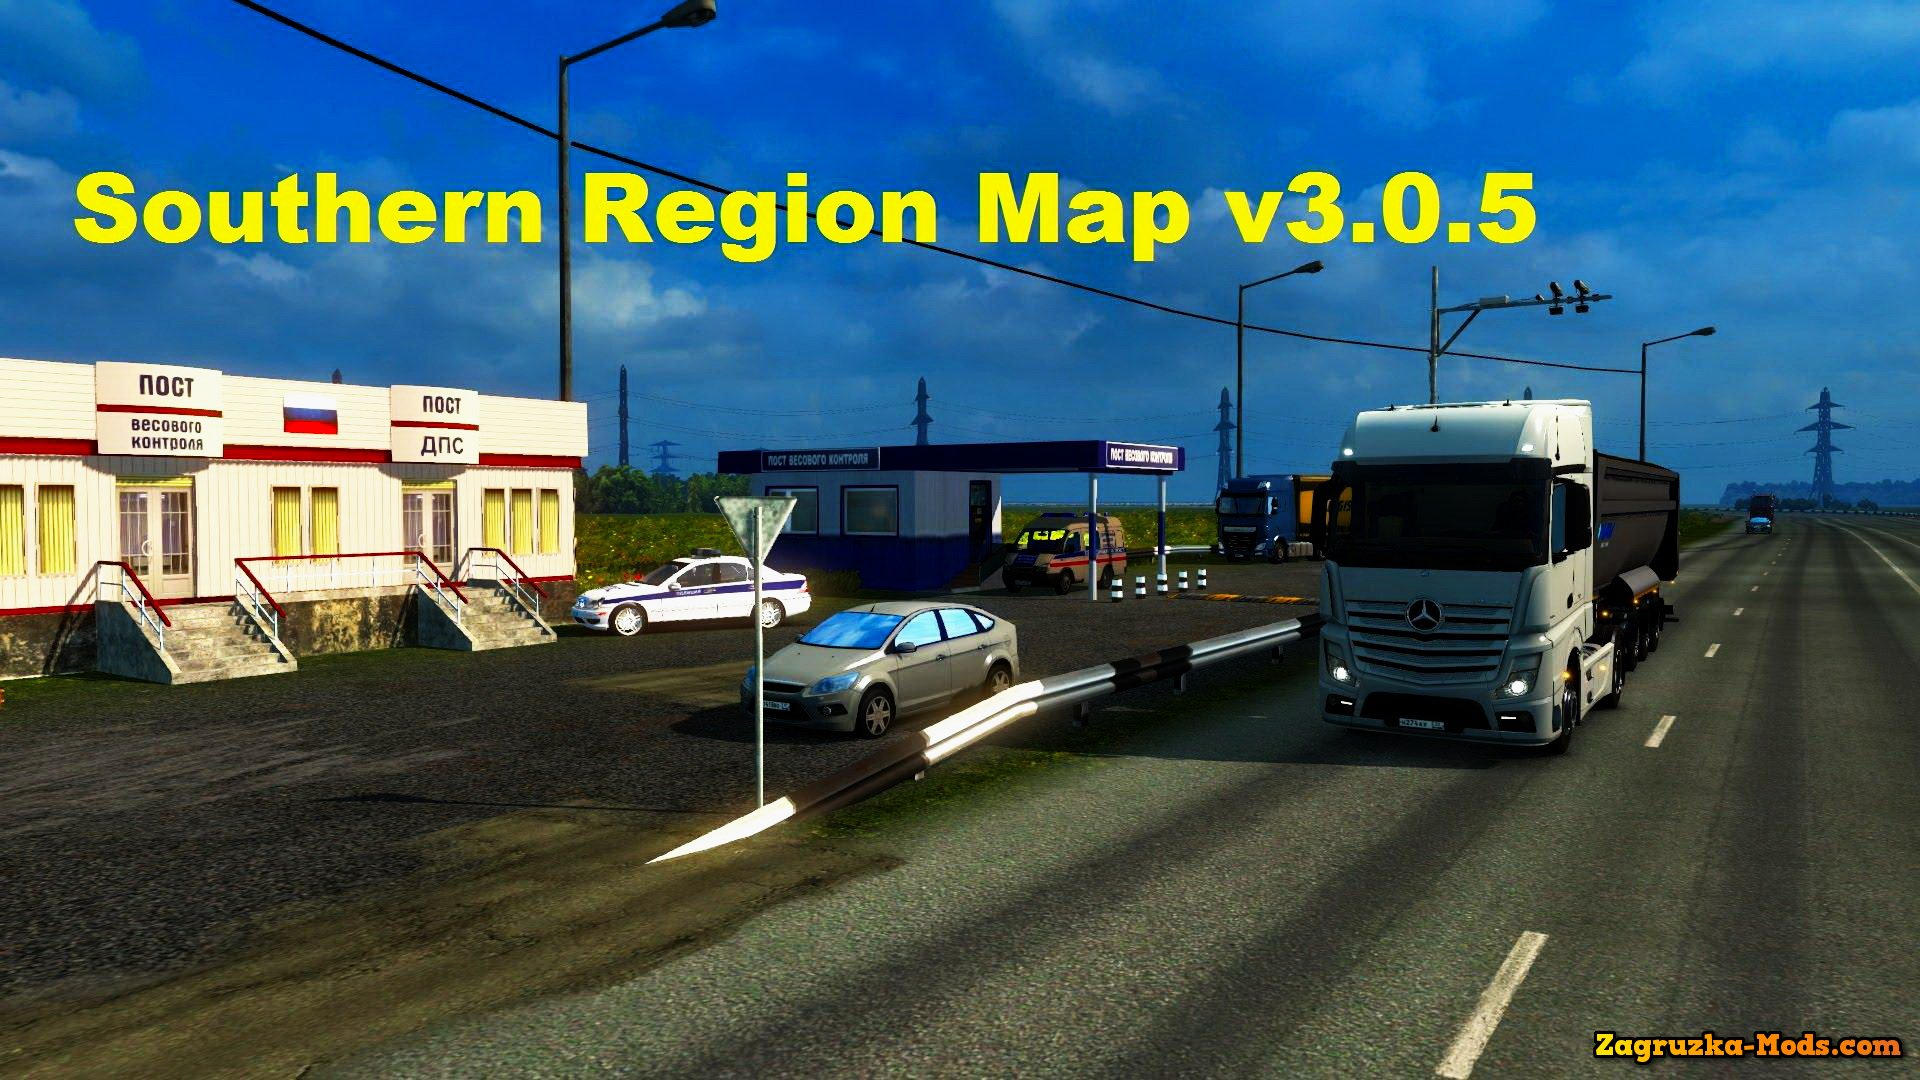 Southern Region Map v3.0.5 for ETS 2